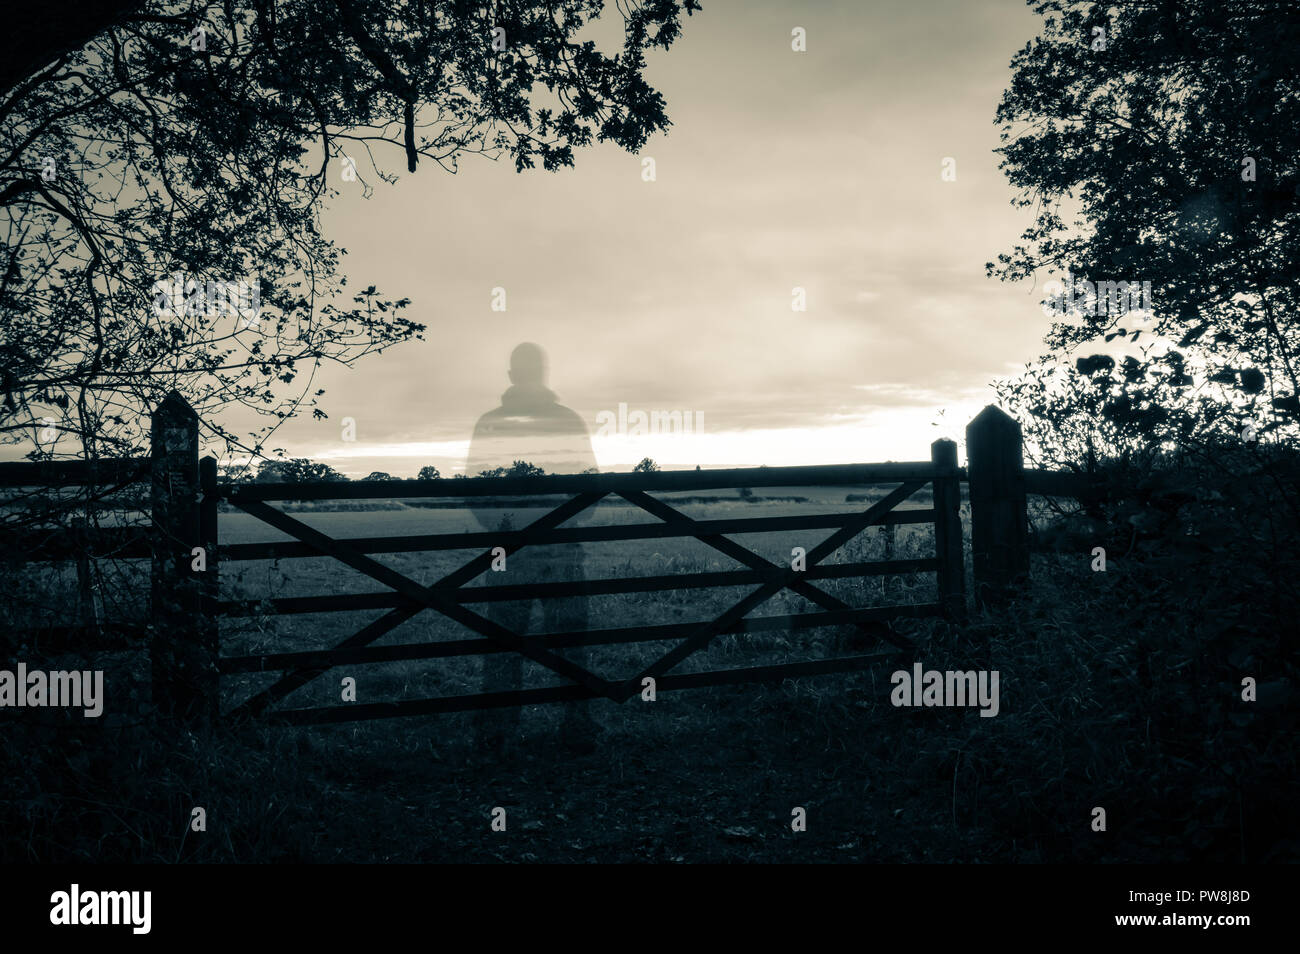 A ghostly transparent figure standing by a gate looking out on countryside. With a grunge vintage duo toned edit - Stock Image